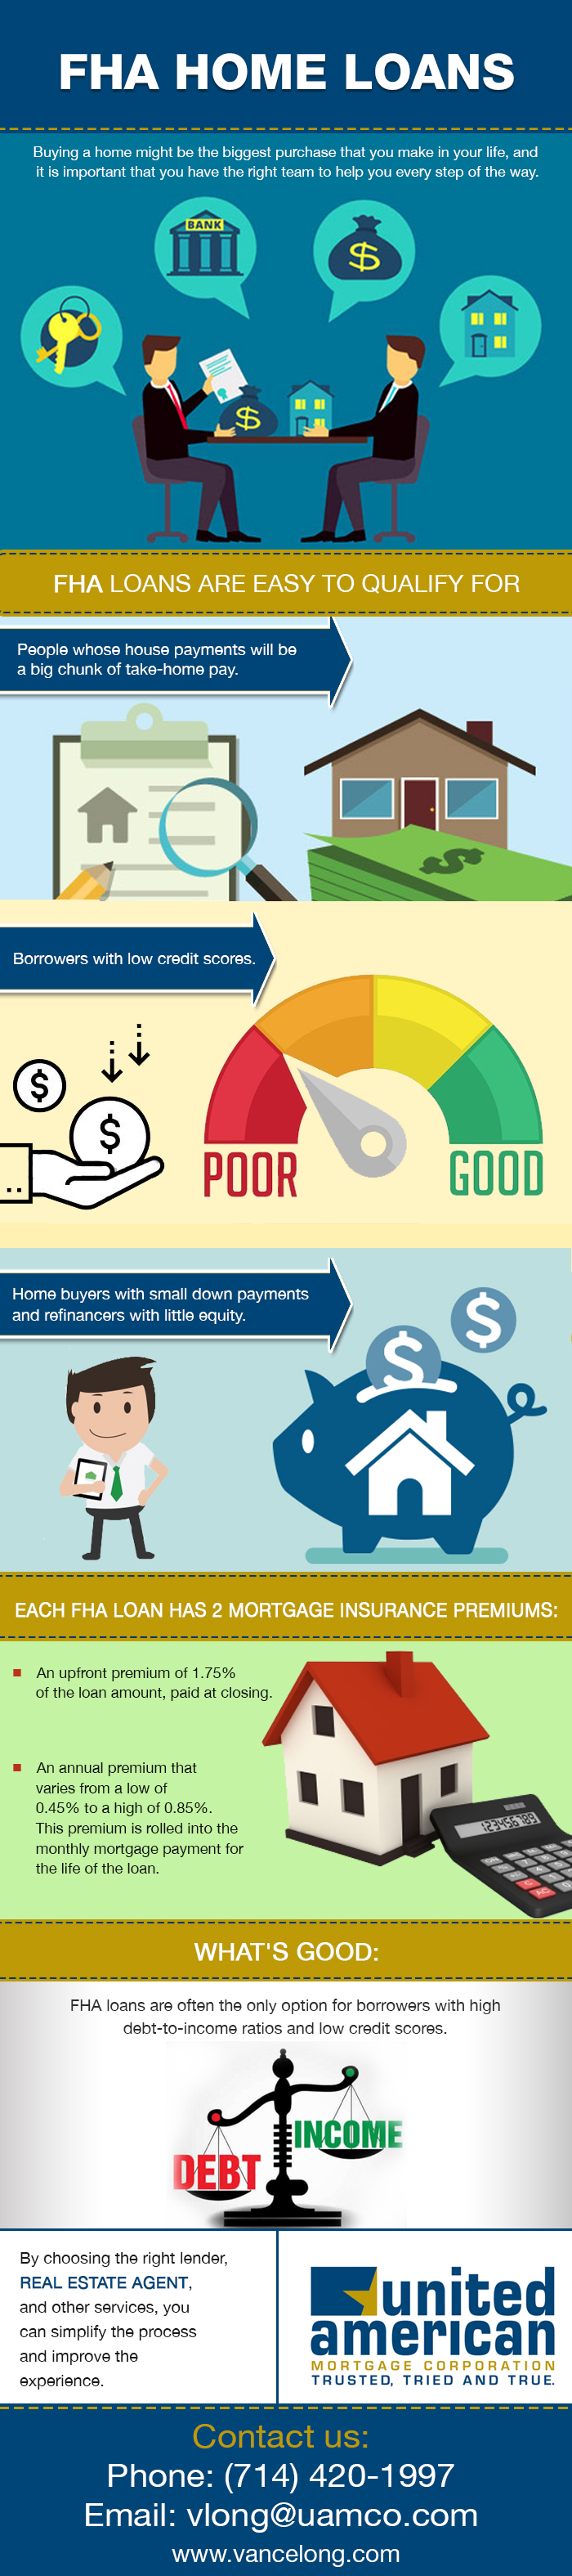 The Fha Home Loans Are The Mortgages Insured By The Federal